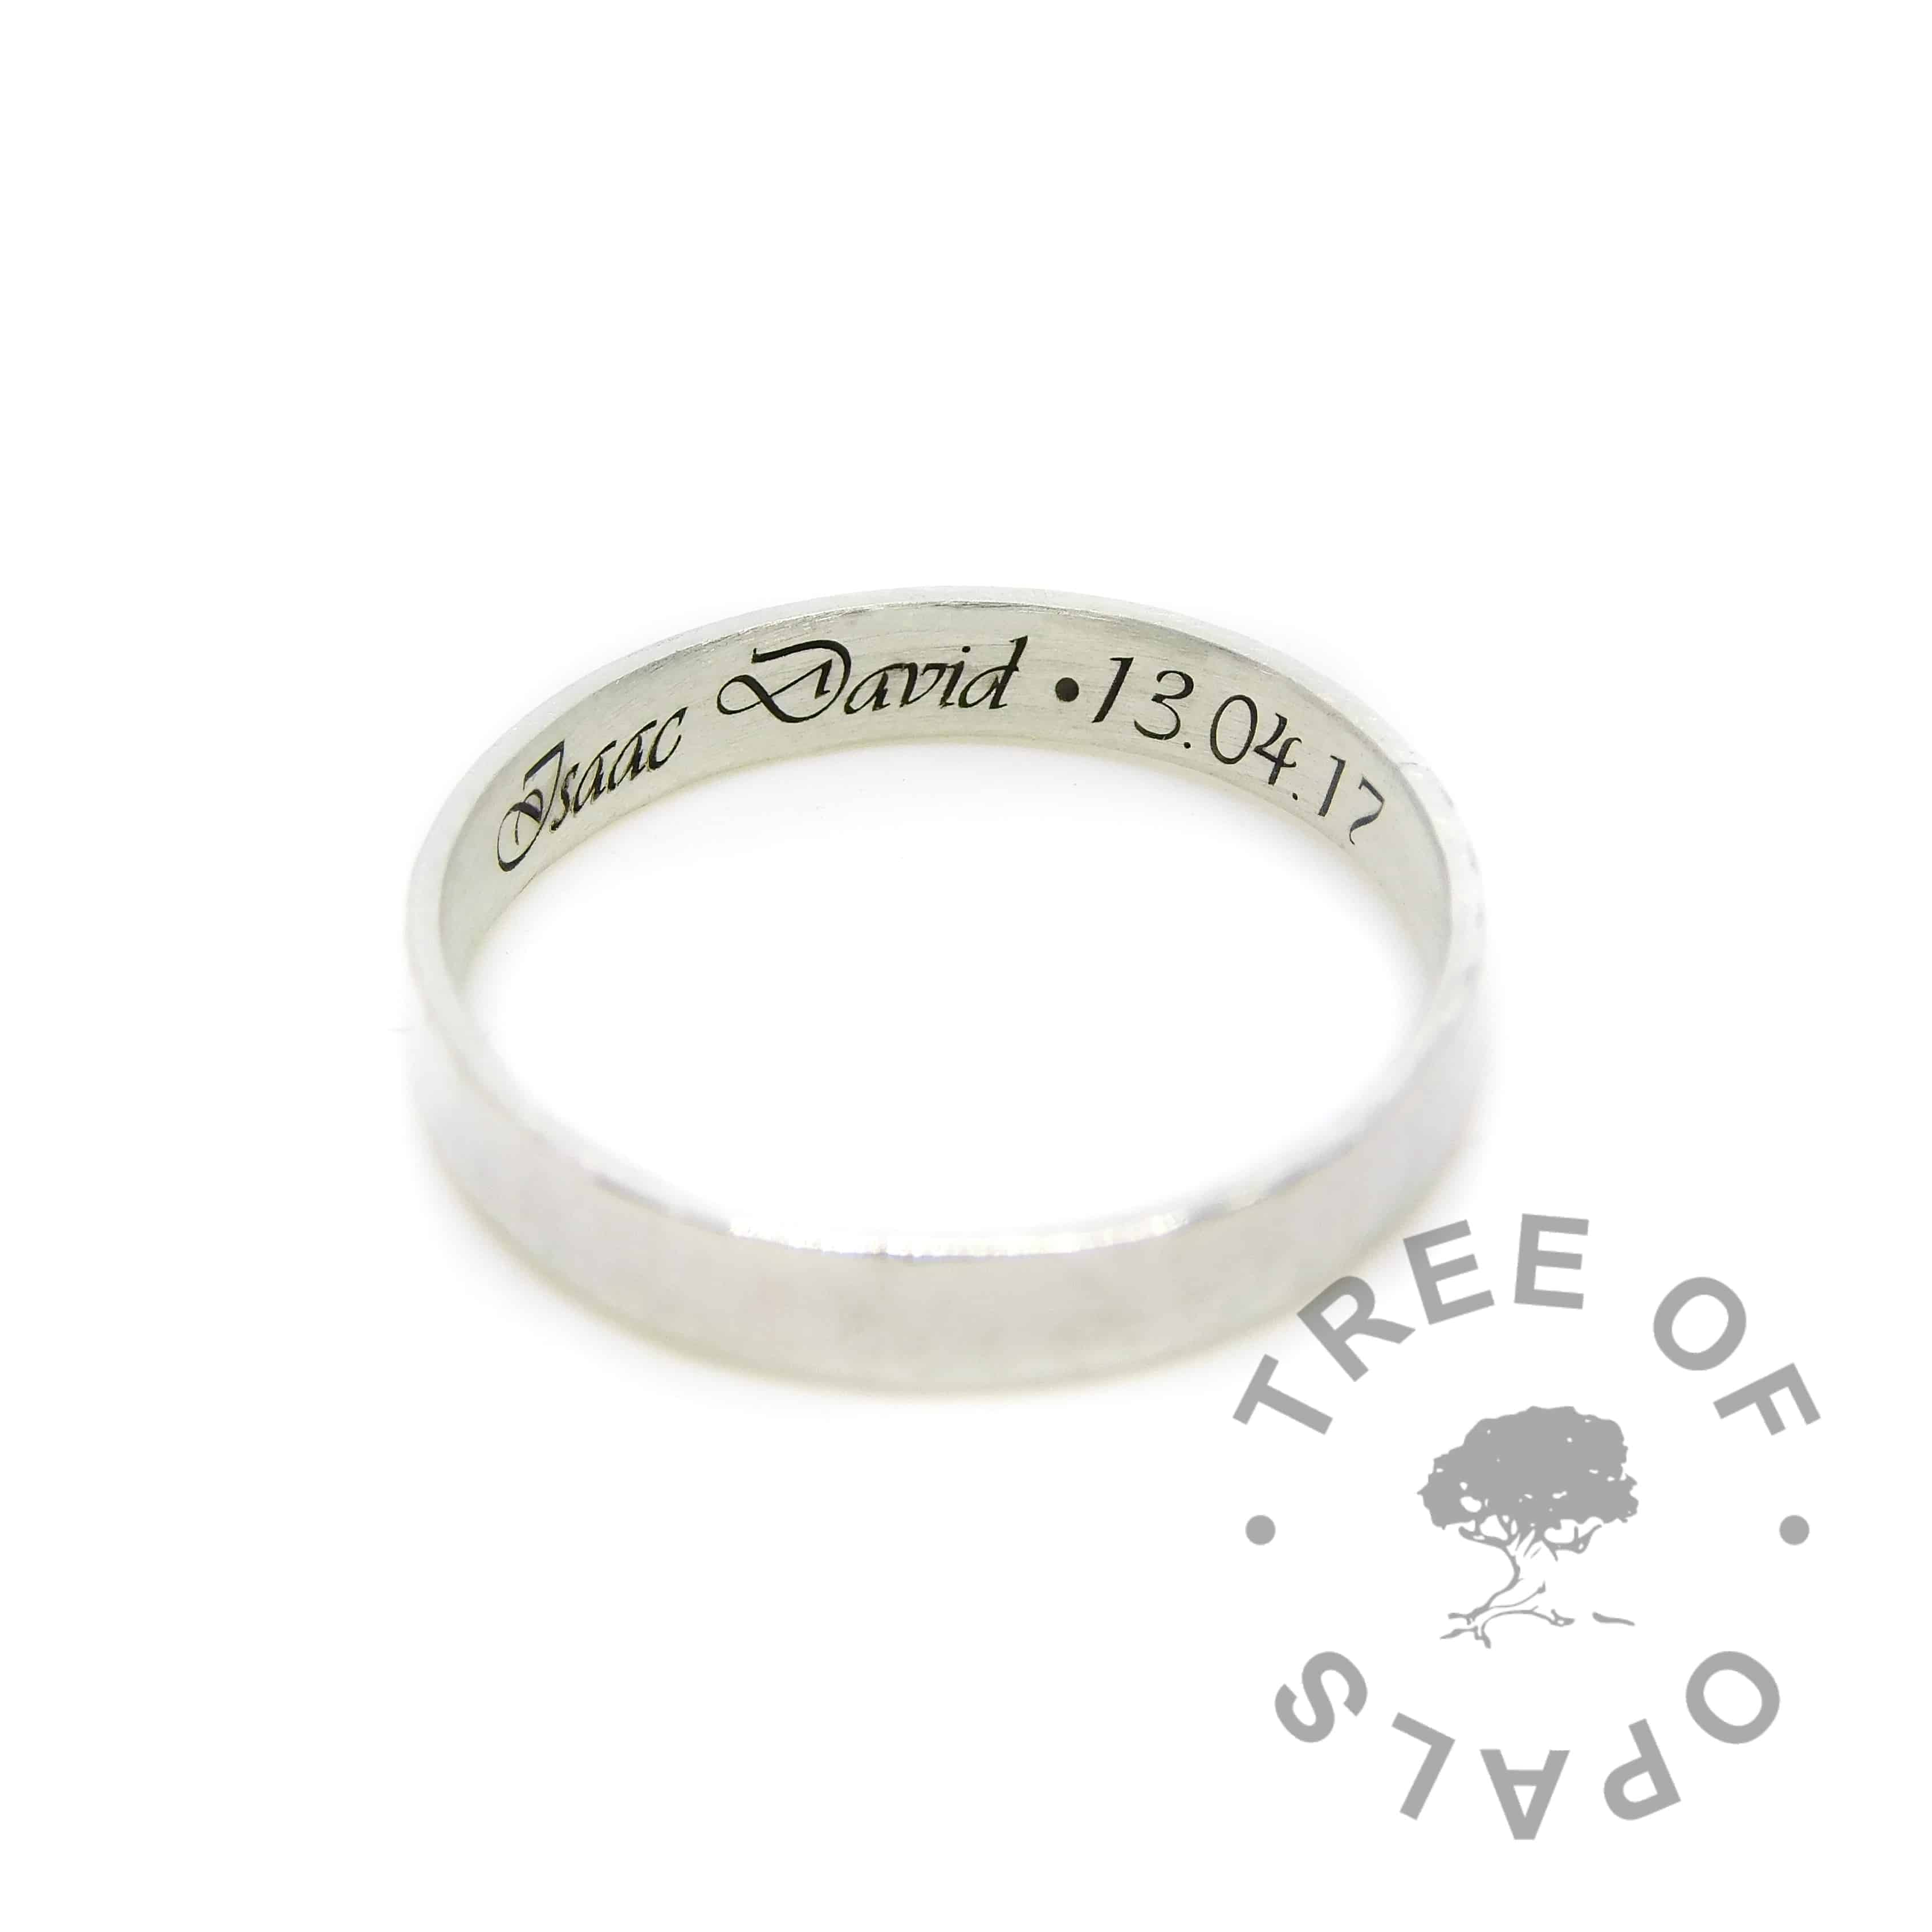 Engraved memorial ring in Vivaldi font, inside. Solid sterling EcoSilver handmade setting with brushed 3mm wire band style. No cabochon (stone)